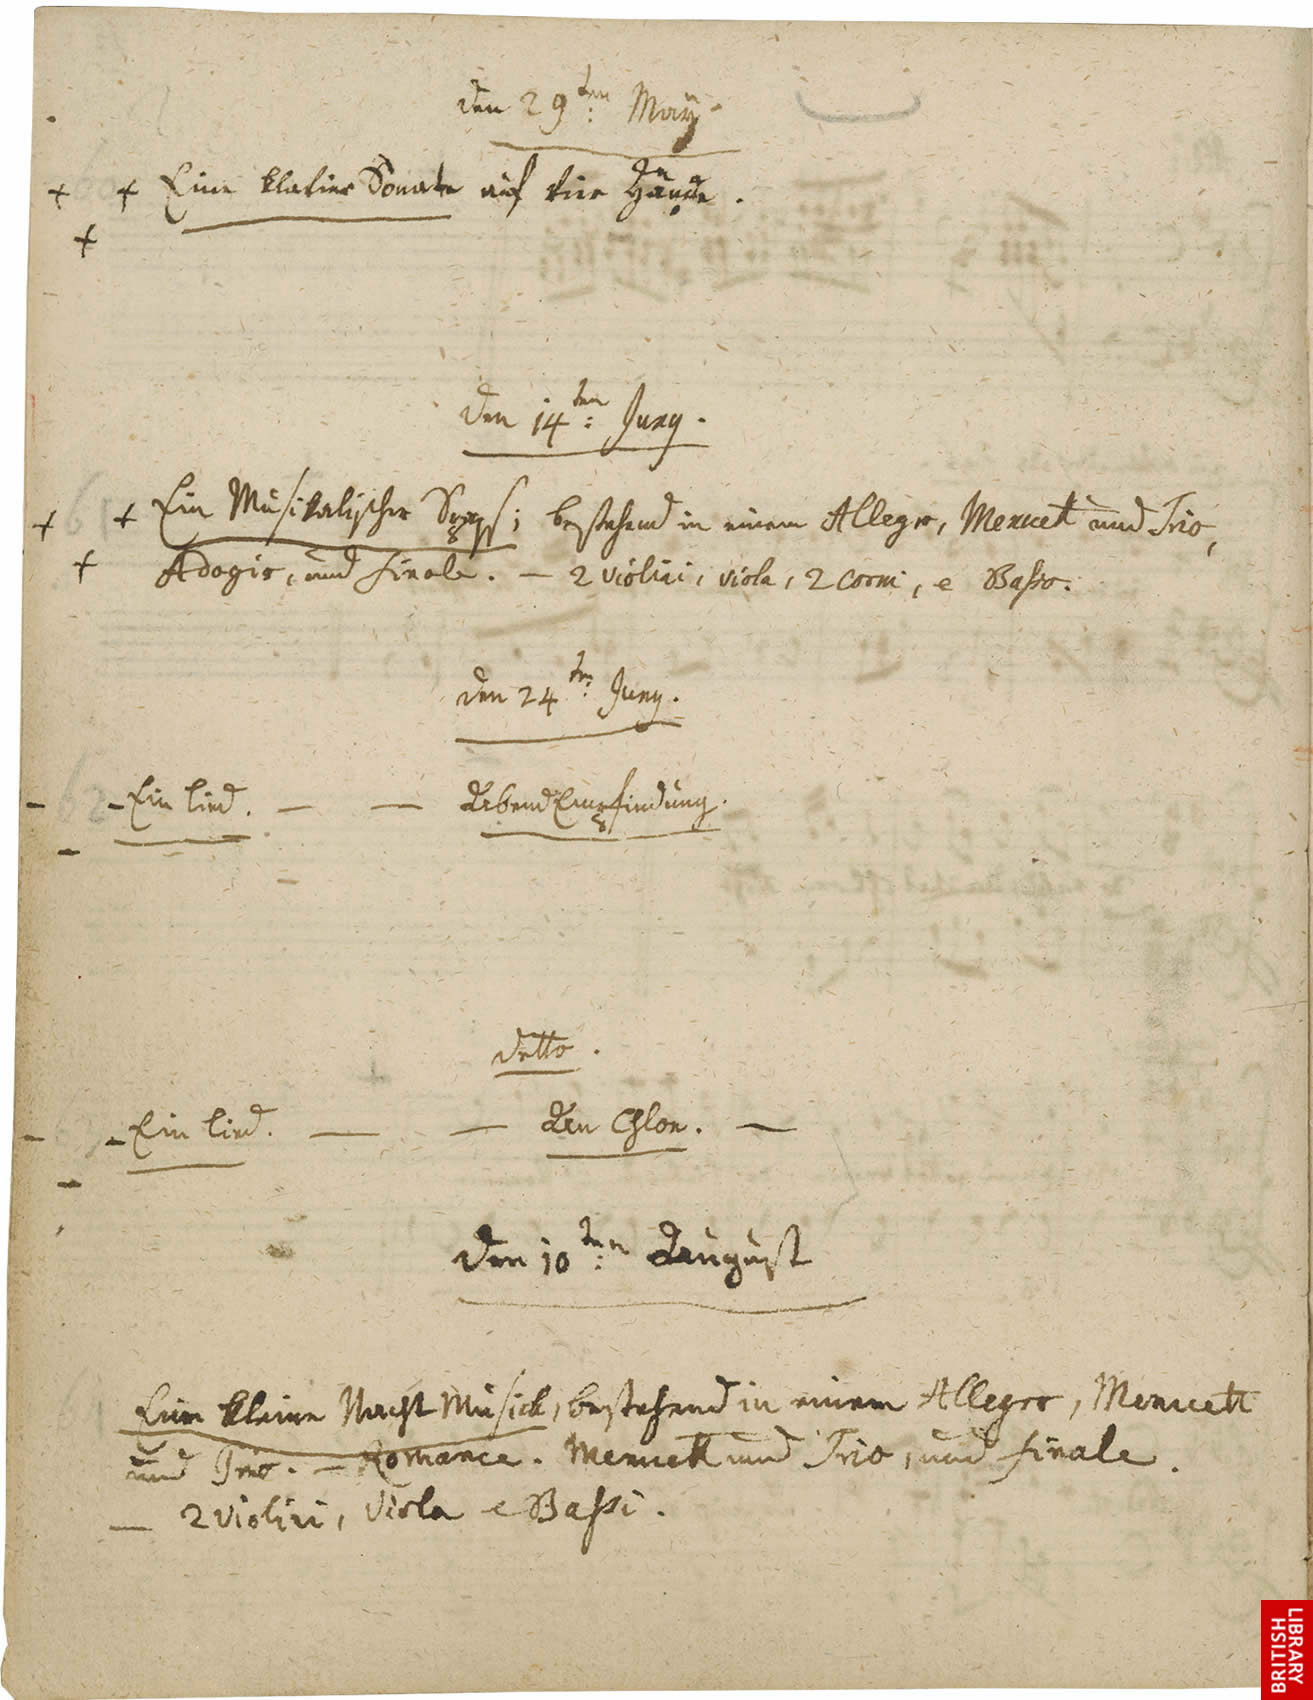 Virtual books: images only - Mozart's Thematic Catalogue - ff  12v-13r